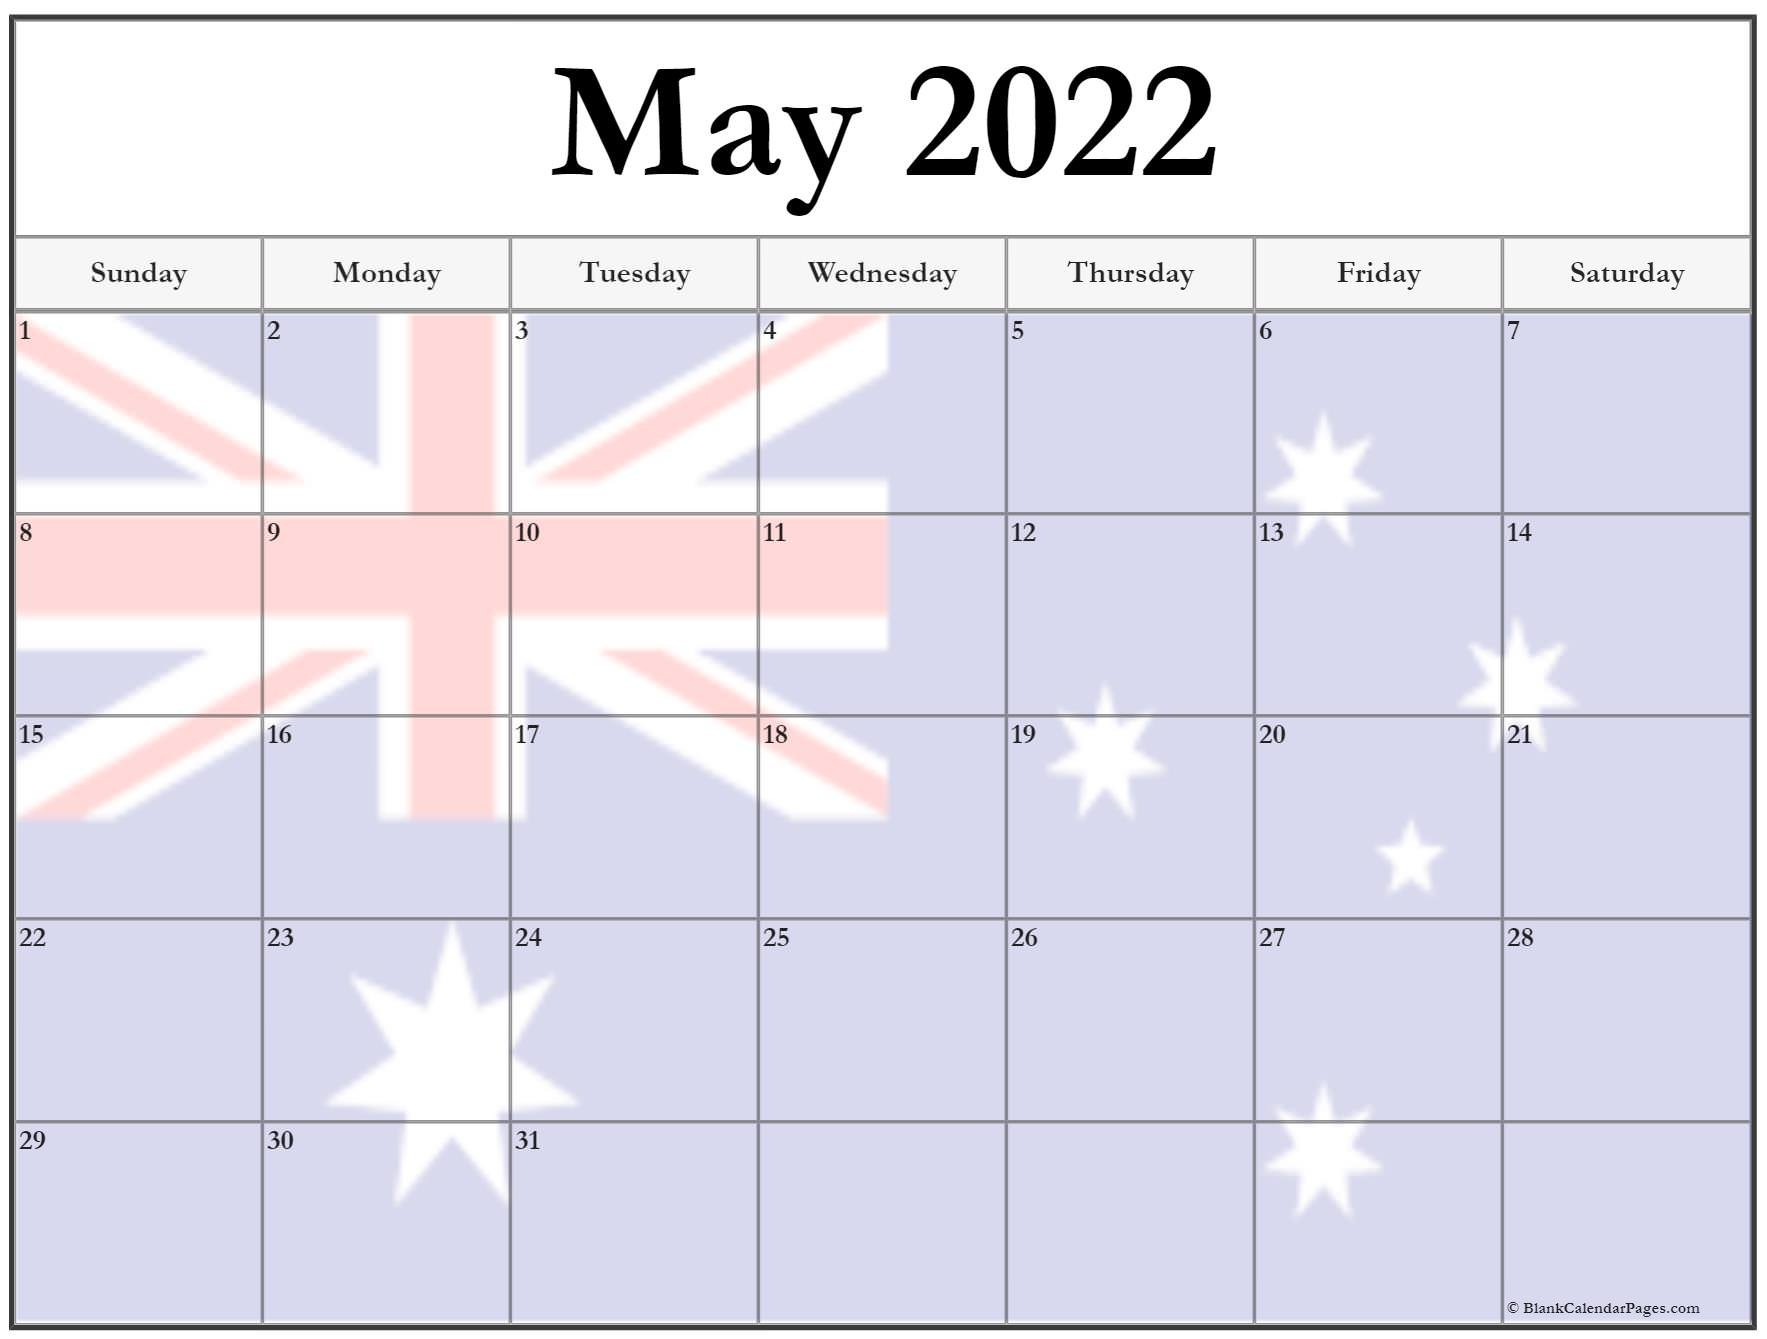 Collection Of May 2022 Photo Calendars With Image Filters. for Printable Calendar May 2022 Photo